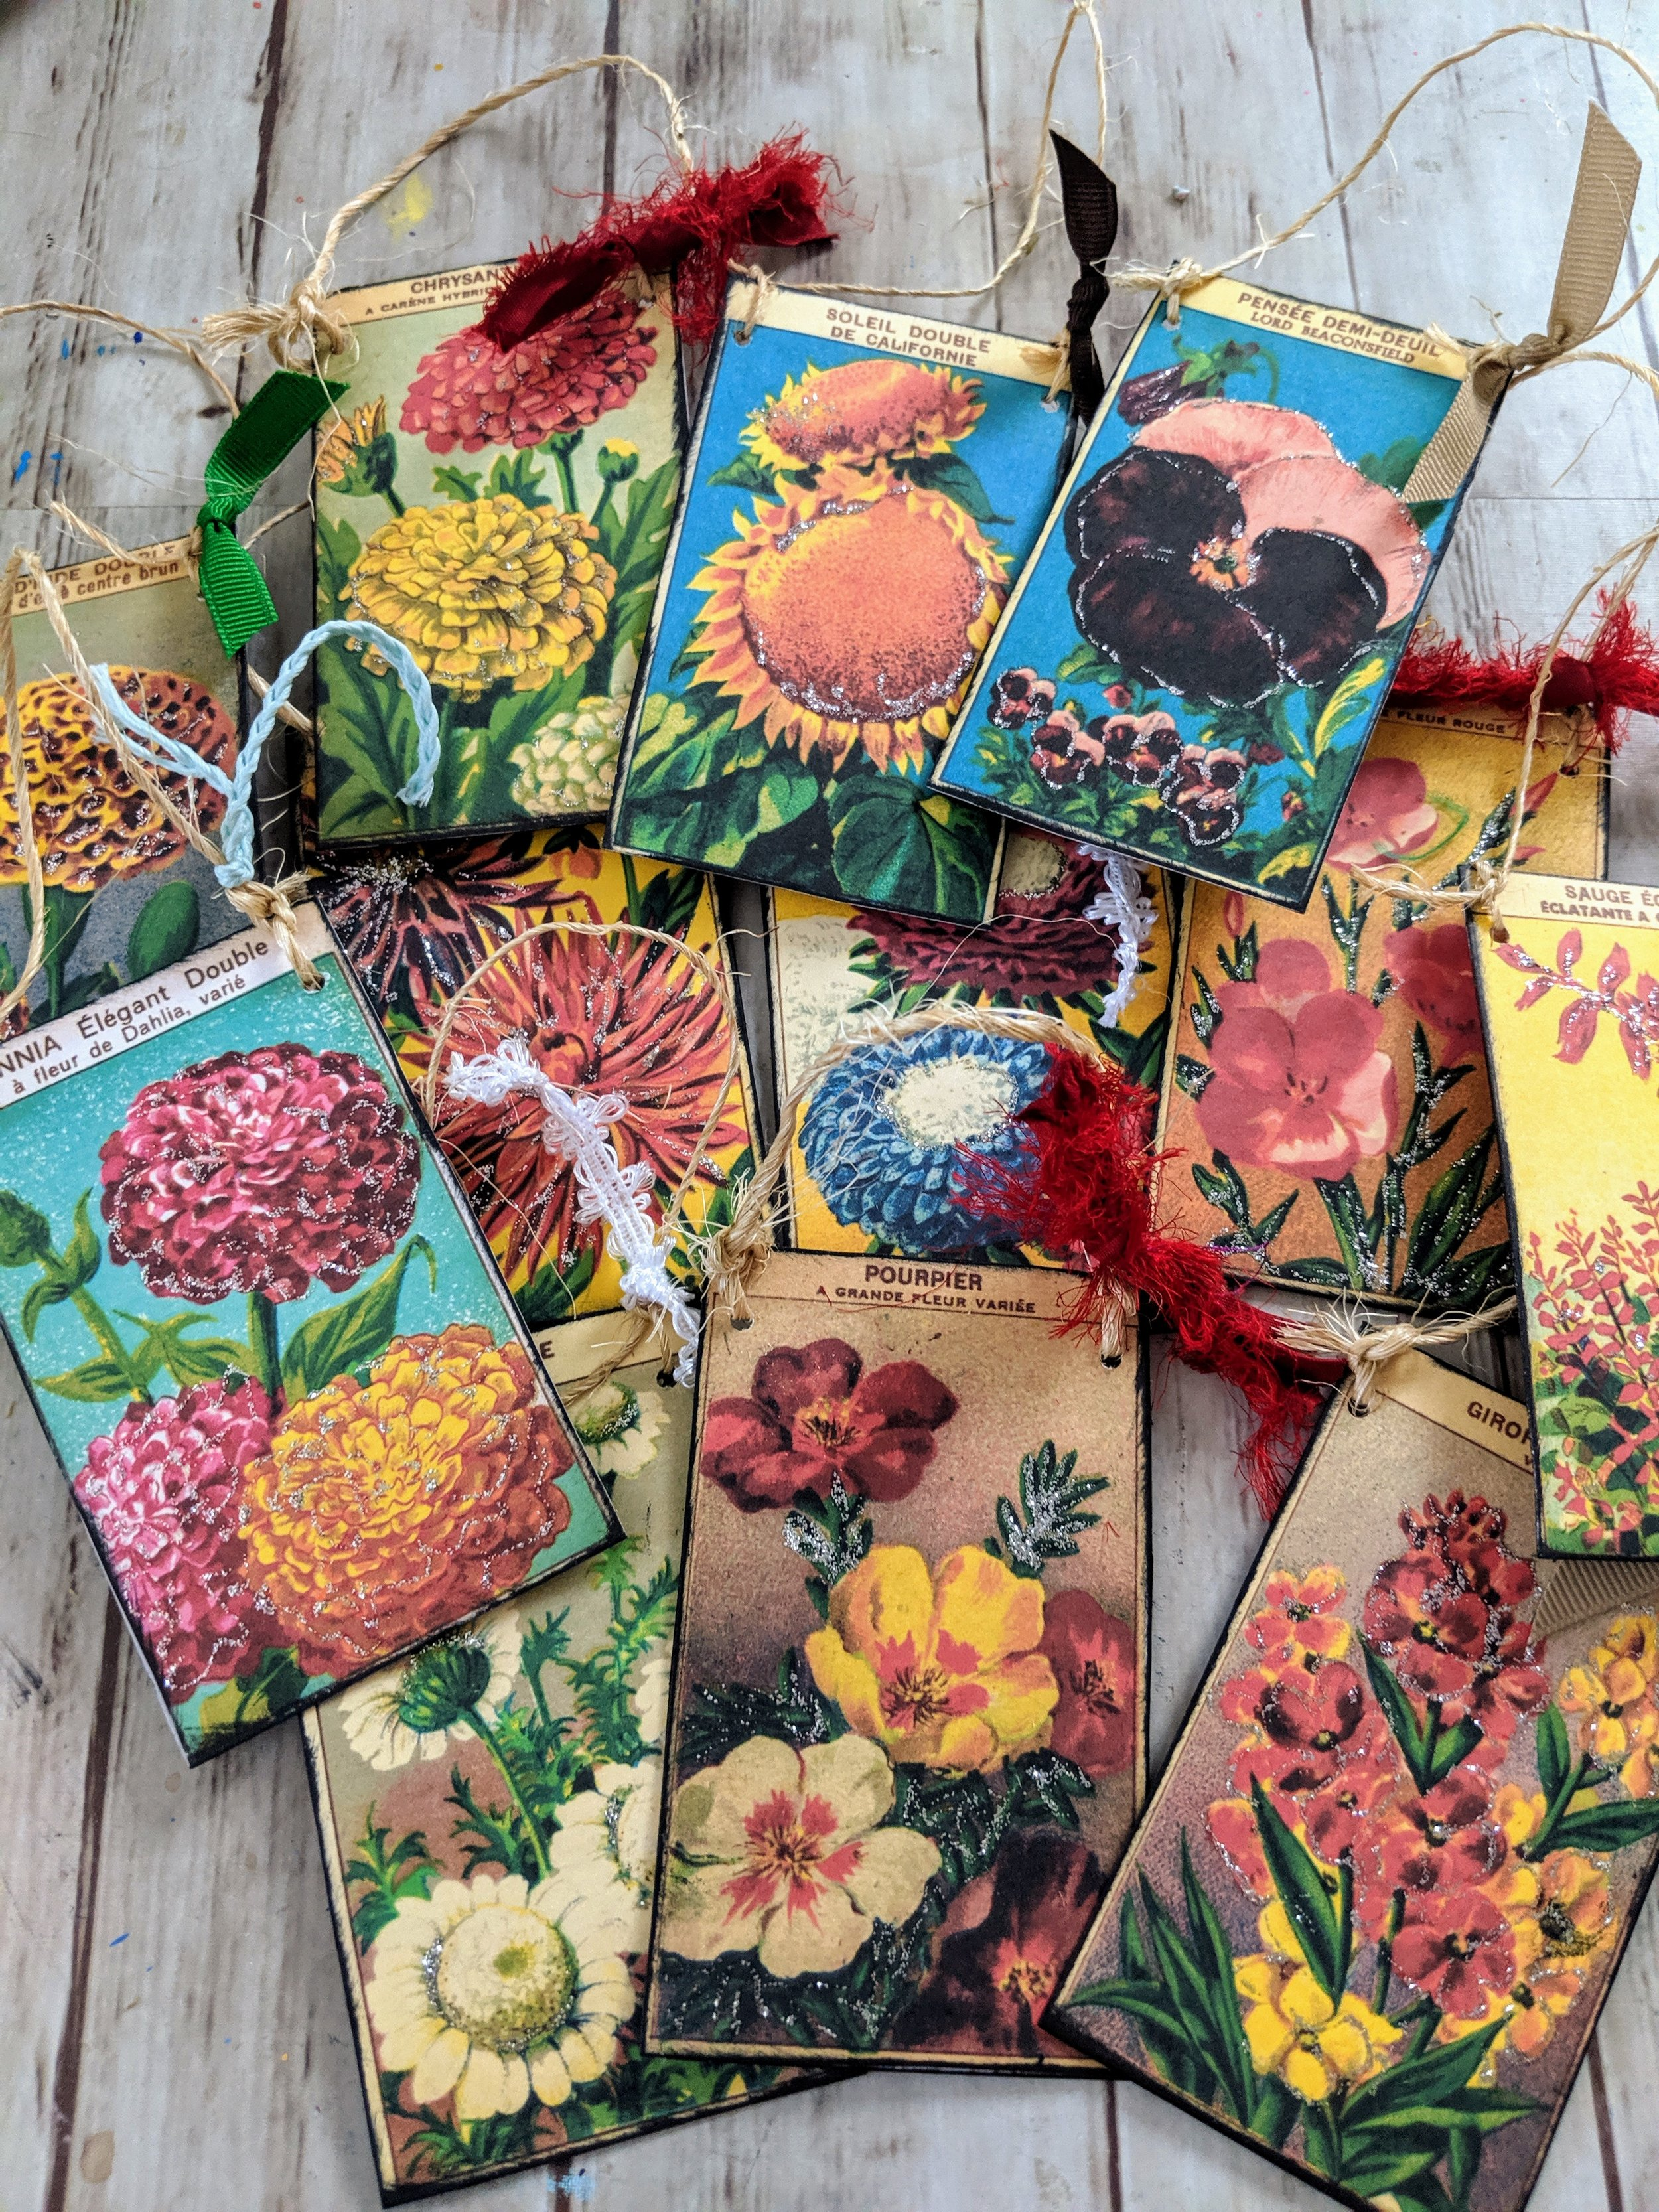 Vintage Seed Packet Ornaments for a Garden Themed Christmas Tree